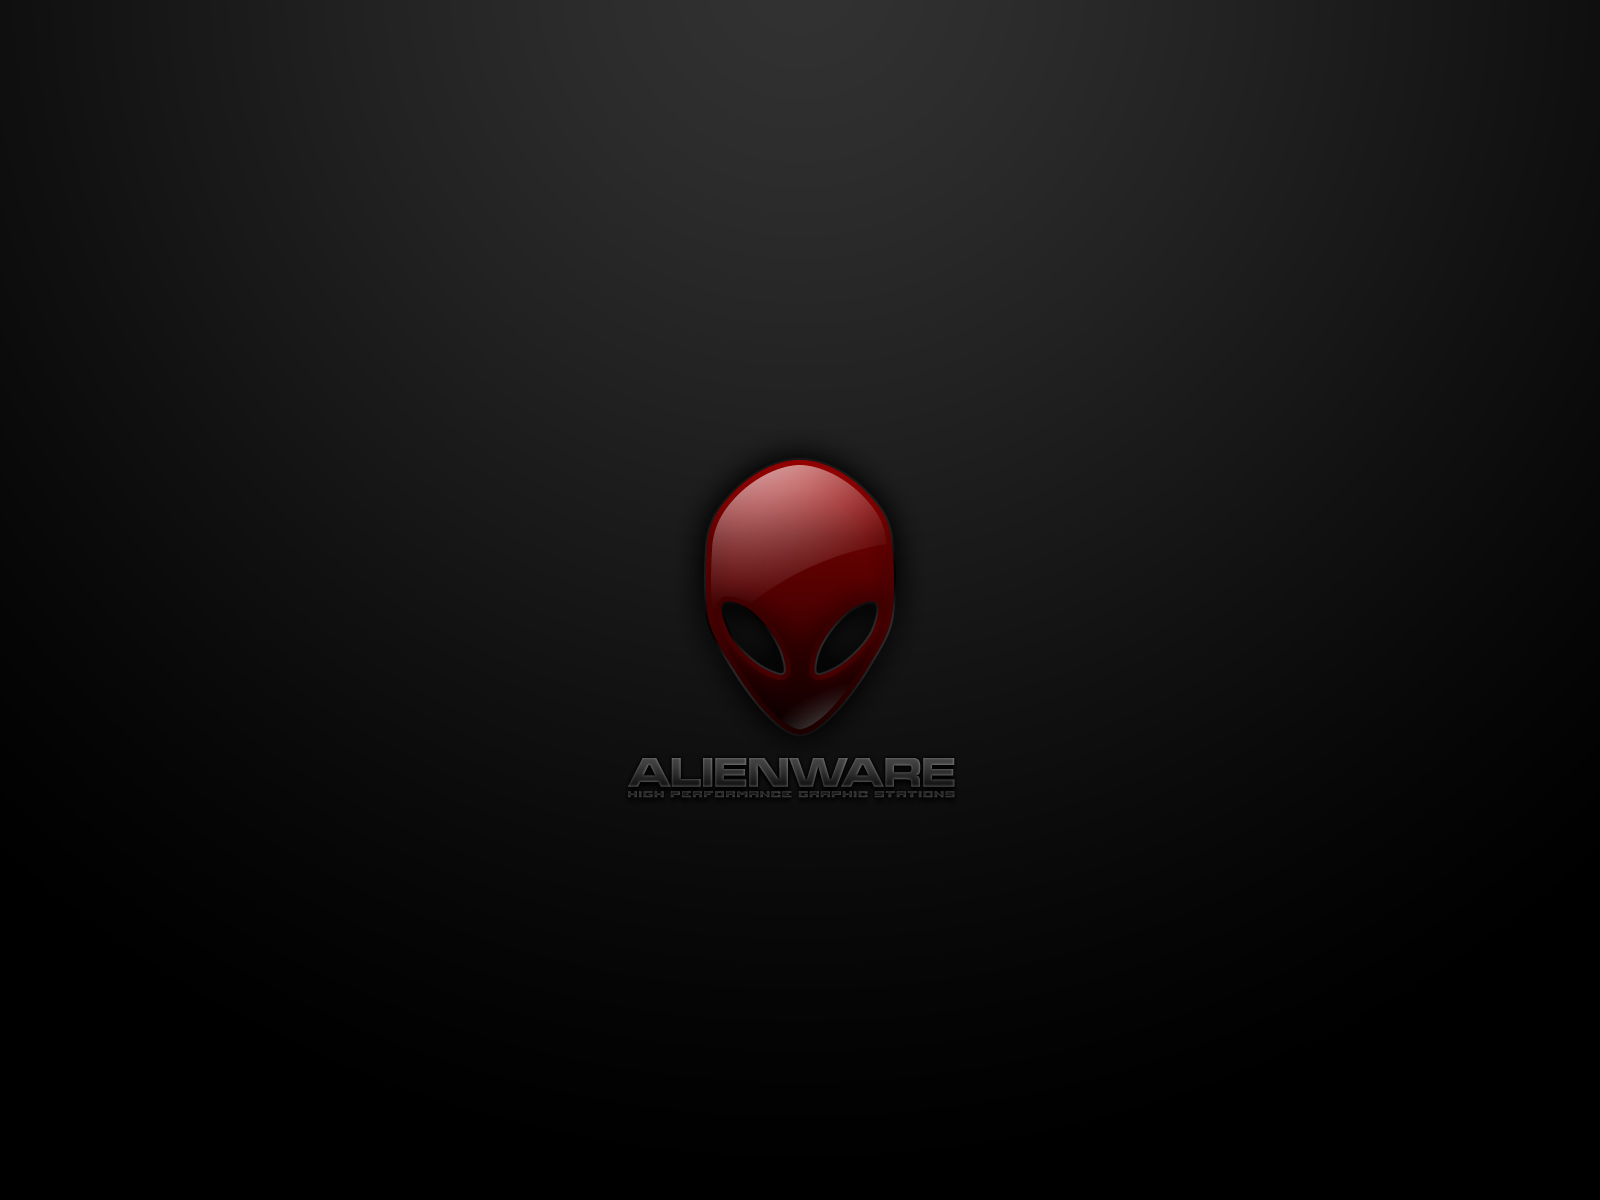 http://3.bp.blogspot.com/-tkCFbtj0--E/Tpur0_K6roI/AAAAAAAAArc/Tgu_GdrLjfU/s1600/Top-Of-The-Top-Alienware-Wallpaper%2B%2525284%252529.jpg